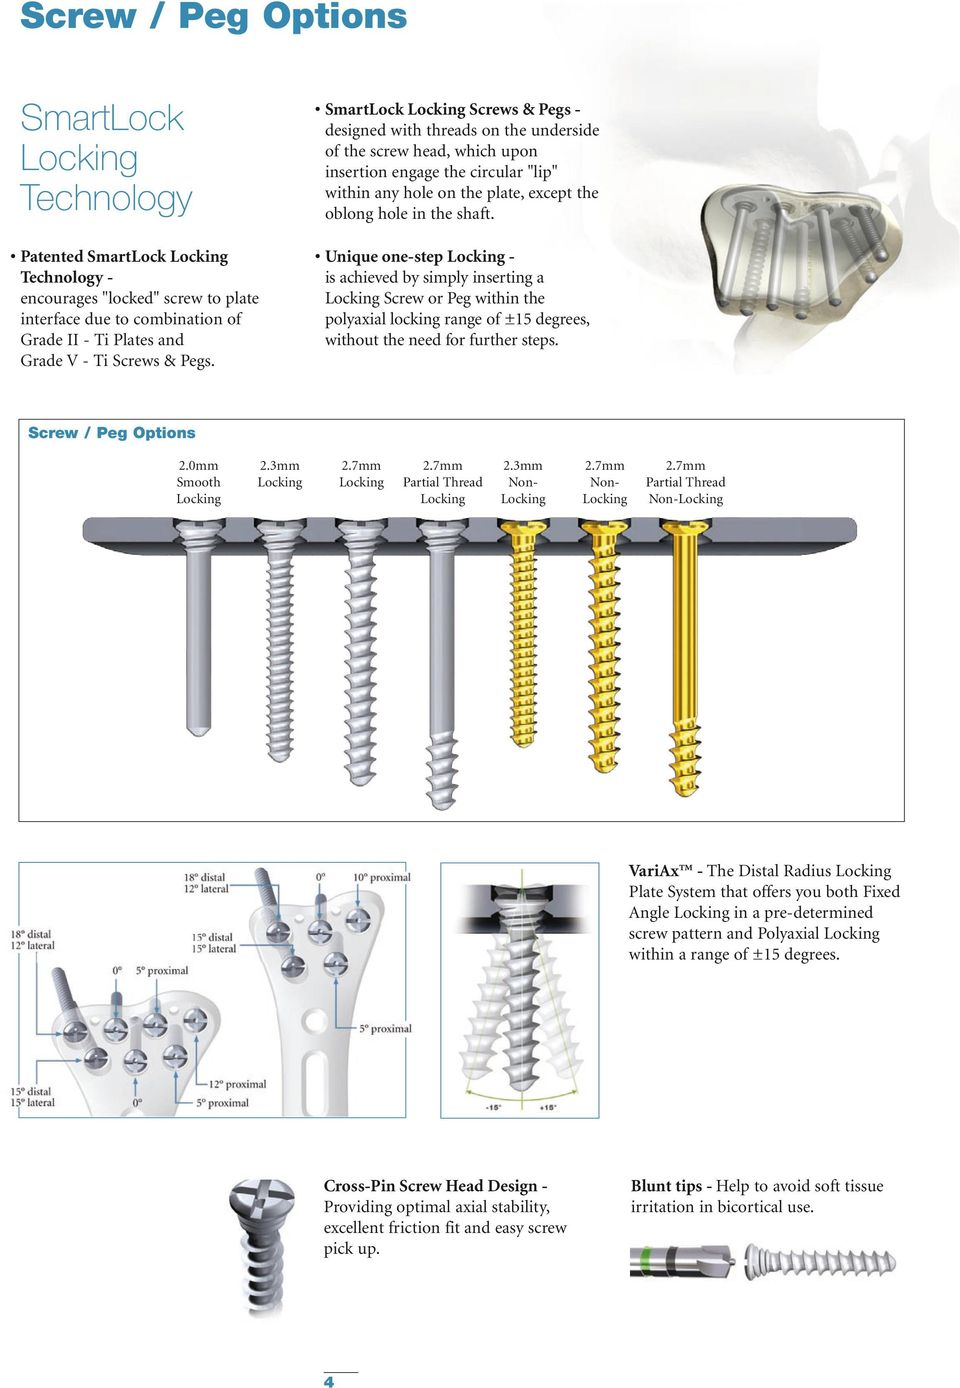 Unique one-step - is achieved by simply inserting a Screw or Peg within the polyaxial locking range of ±15 degrees, without the need for further steps. Screw / Peg Options 2.0 Smooth 2.3 2.7 2.